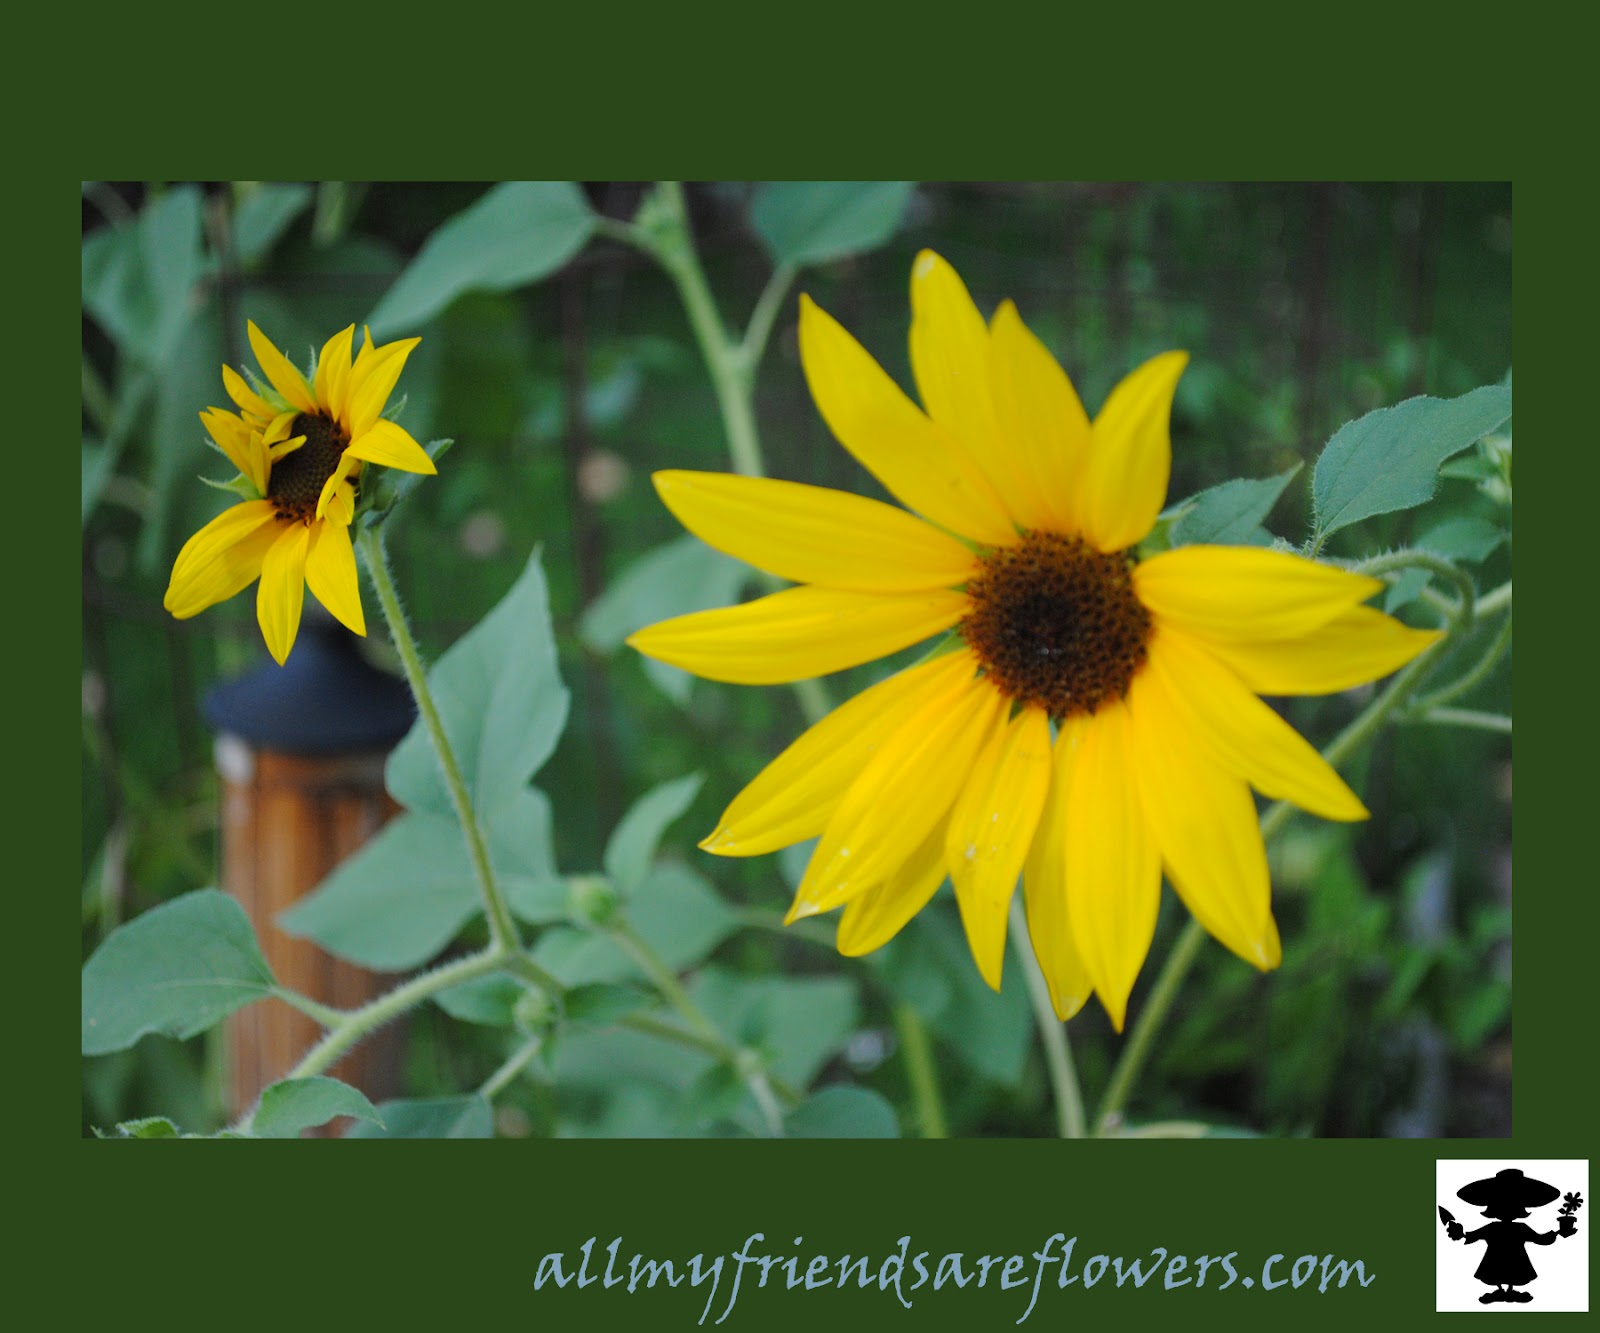 sunflower at dawn allmyfriendsareflowers.com